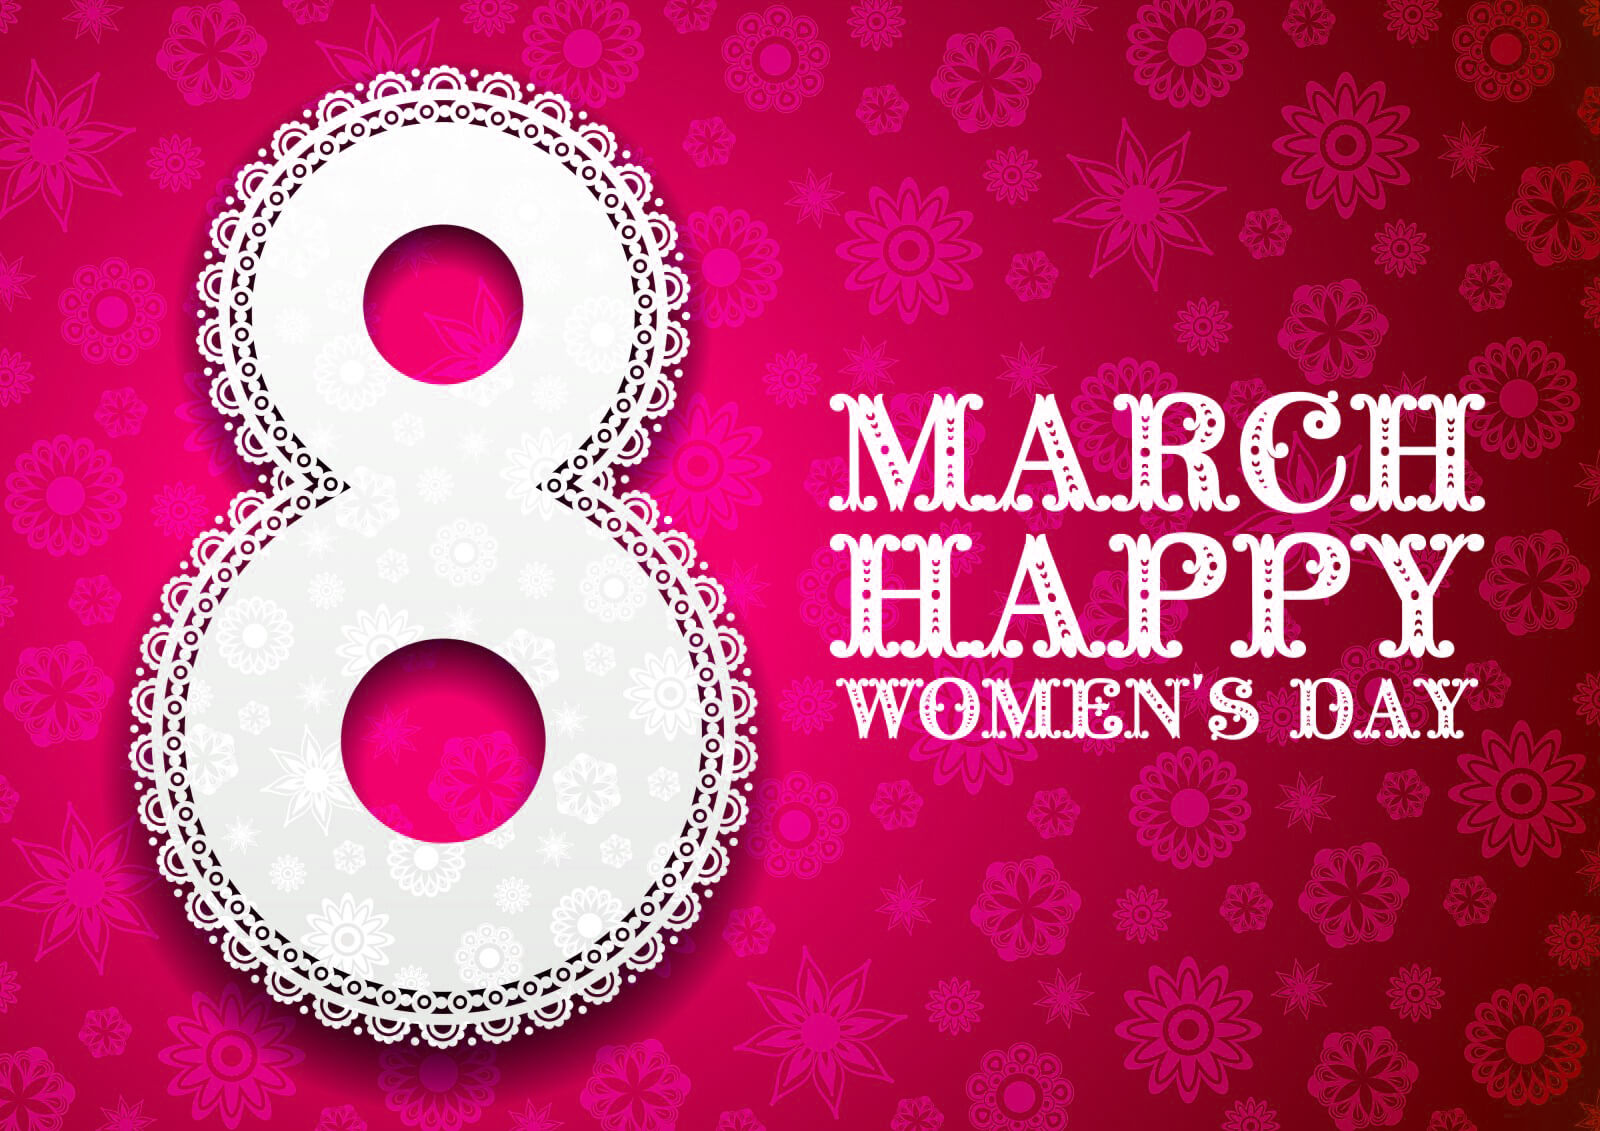 happy womens day march 8 wallpaper